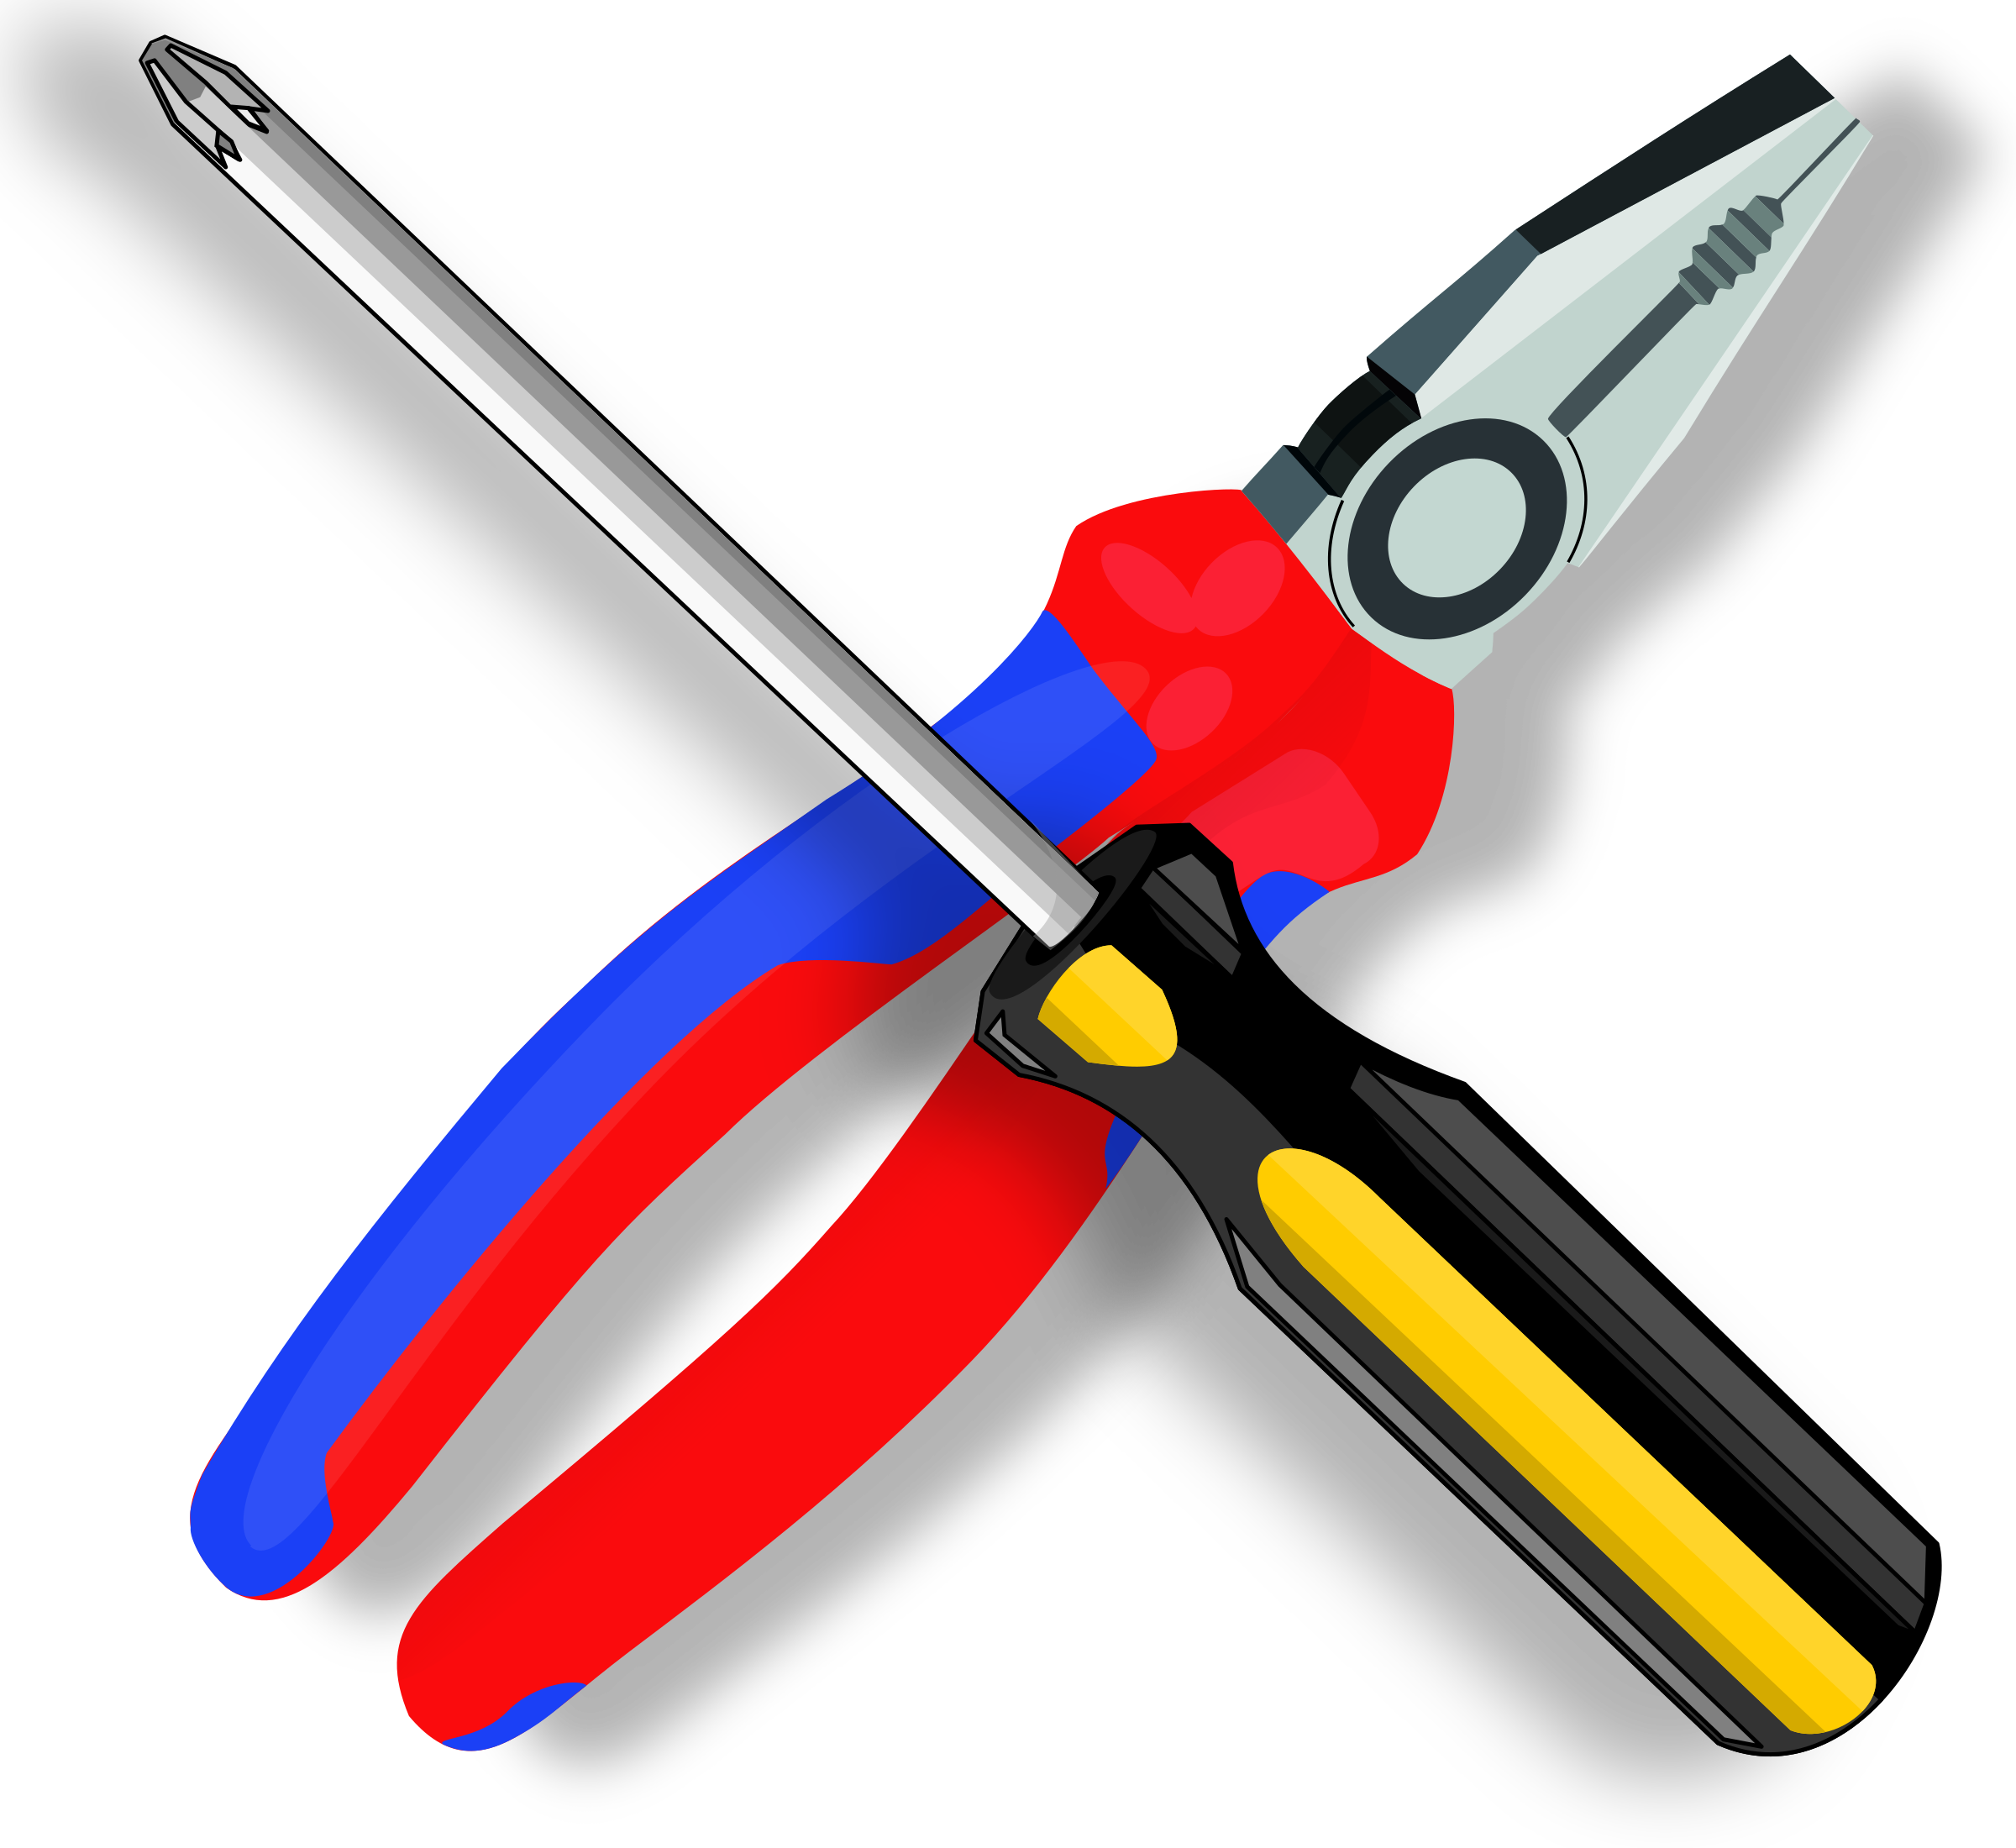 Tools Png Clipart - Tool, Transparent background PNG HD thumbnail